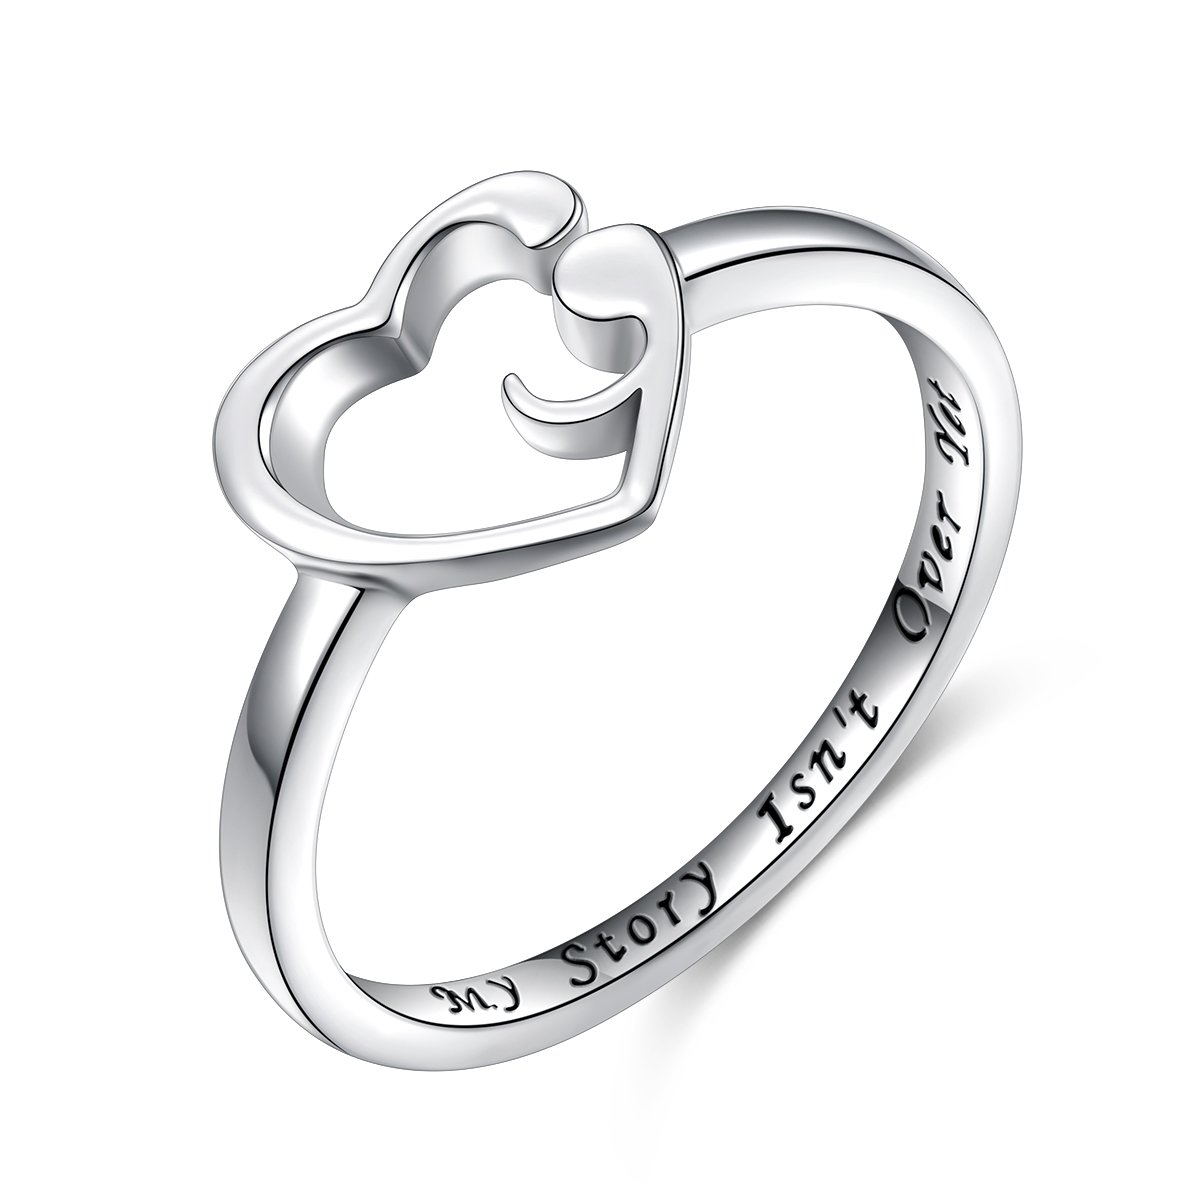 Inspirational Jewelry S925 Sterling Silver My Story Isn't Over Yet Semicolon Ring Size 7